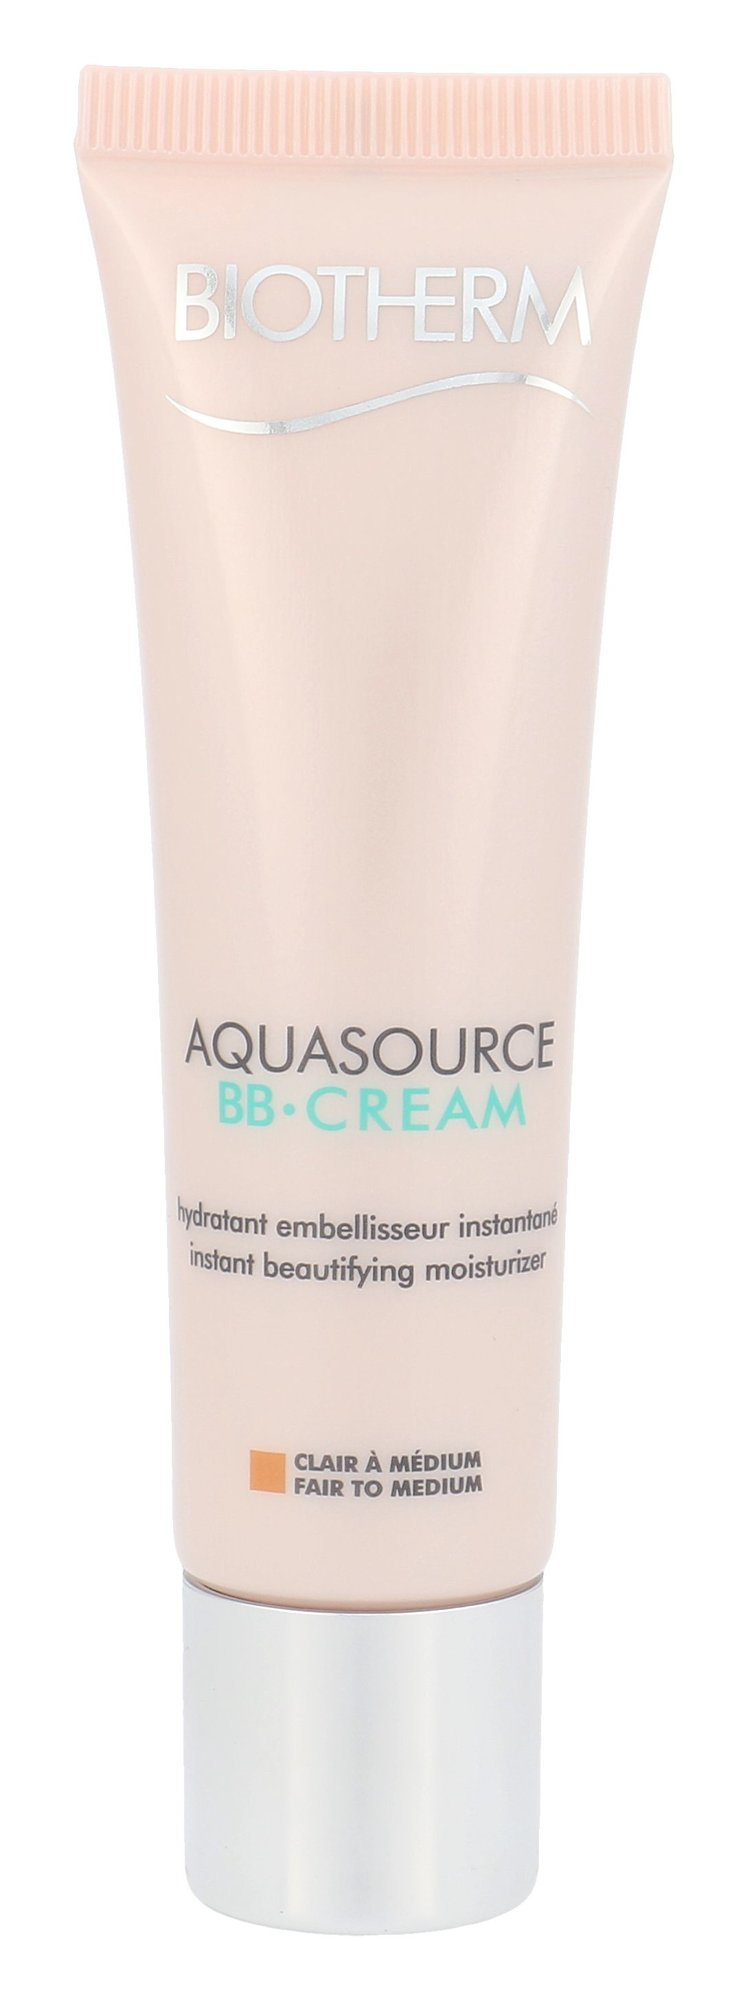 Biotherm Aquasource Cosmetic 30ml Fair To Medium